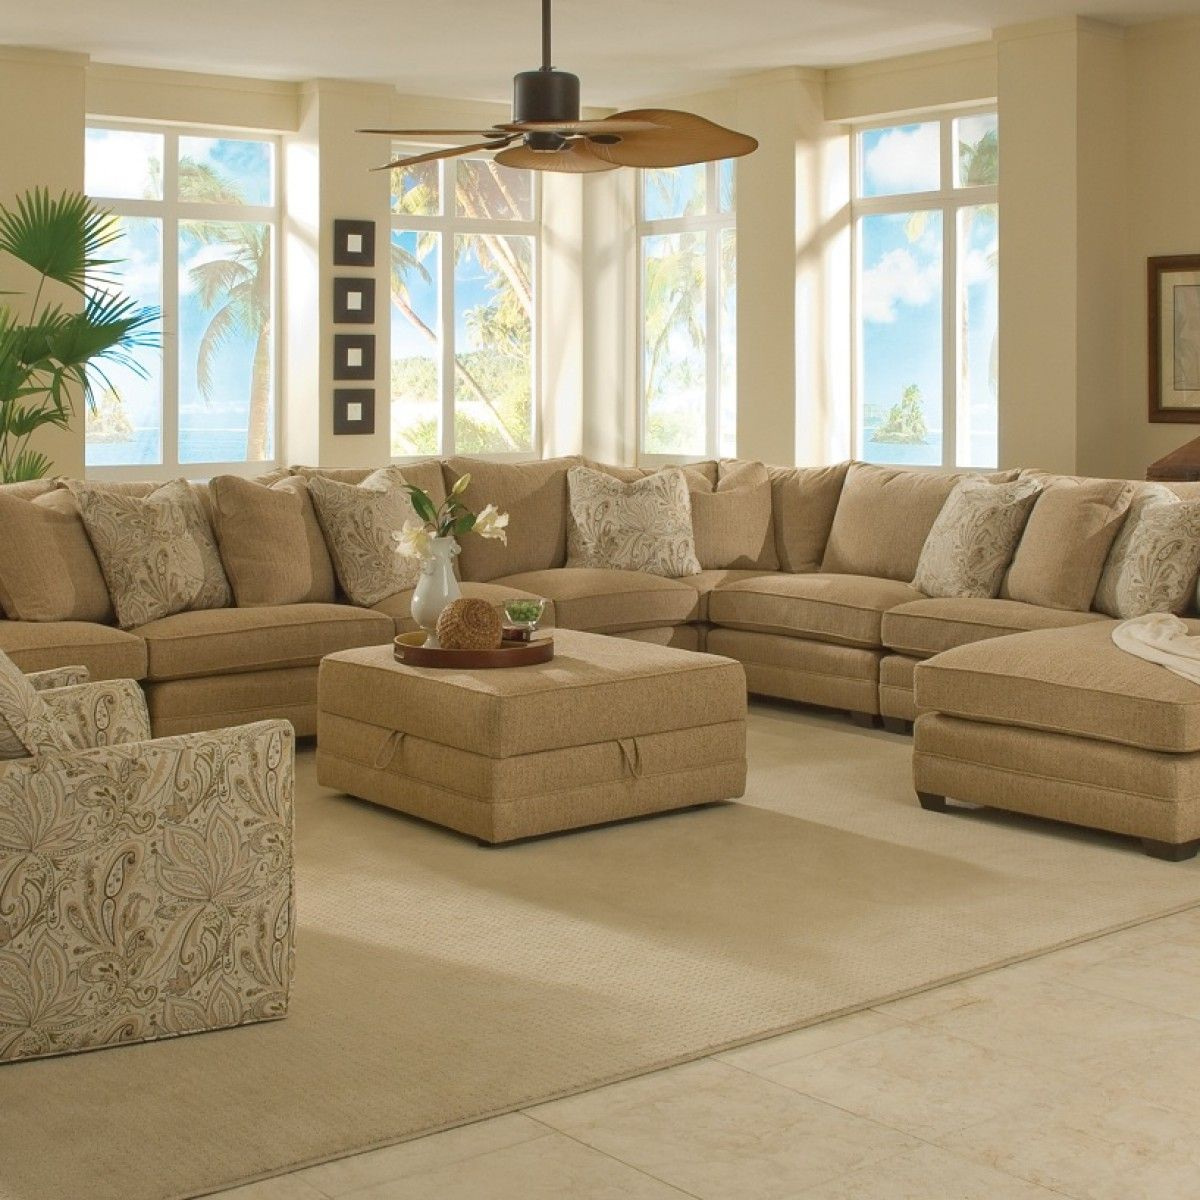 Magnificent large sectional sofas family room for Furniture design for living room